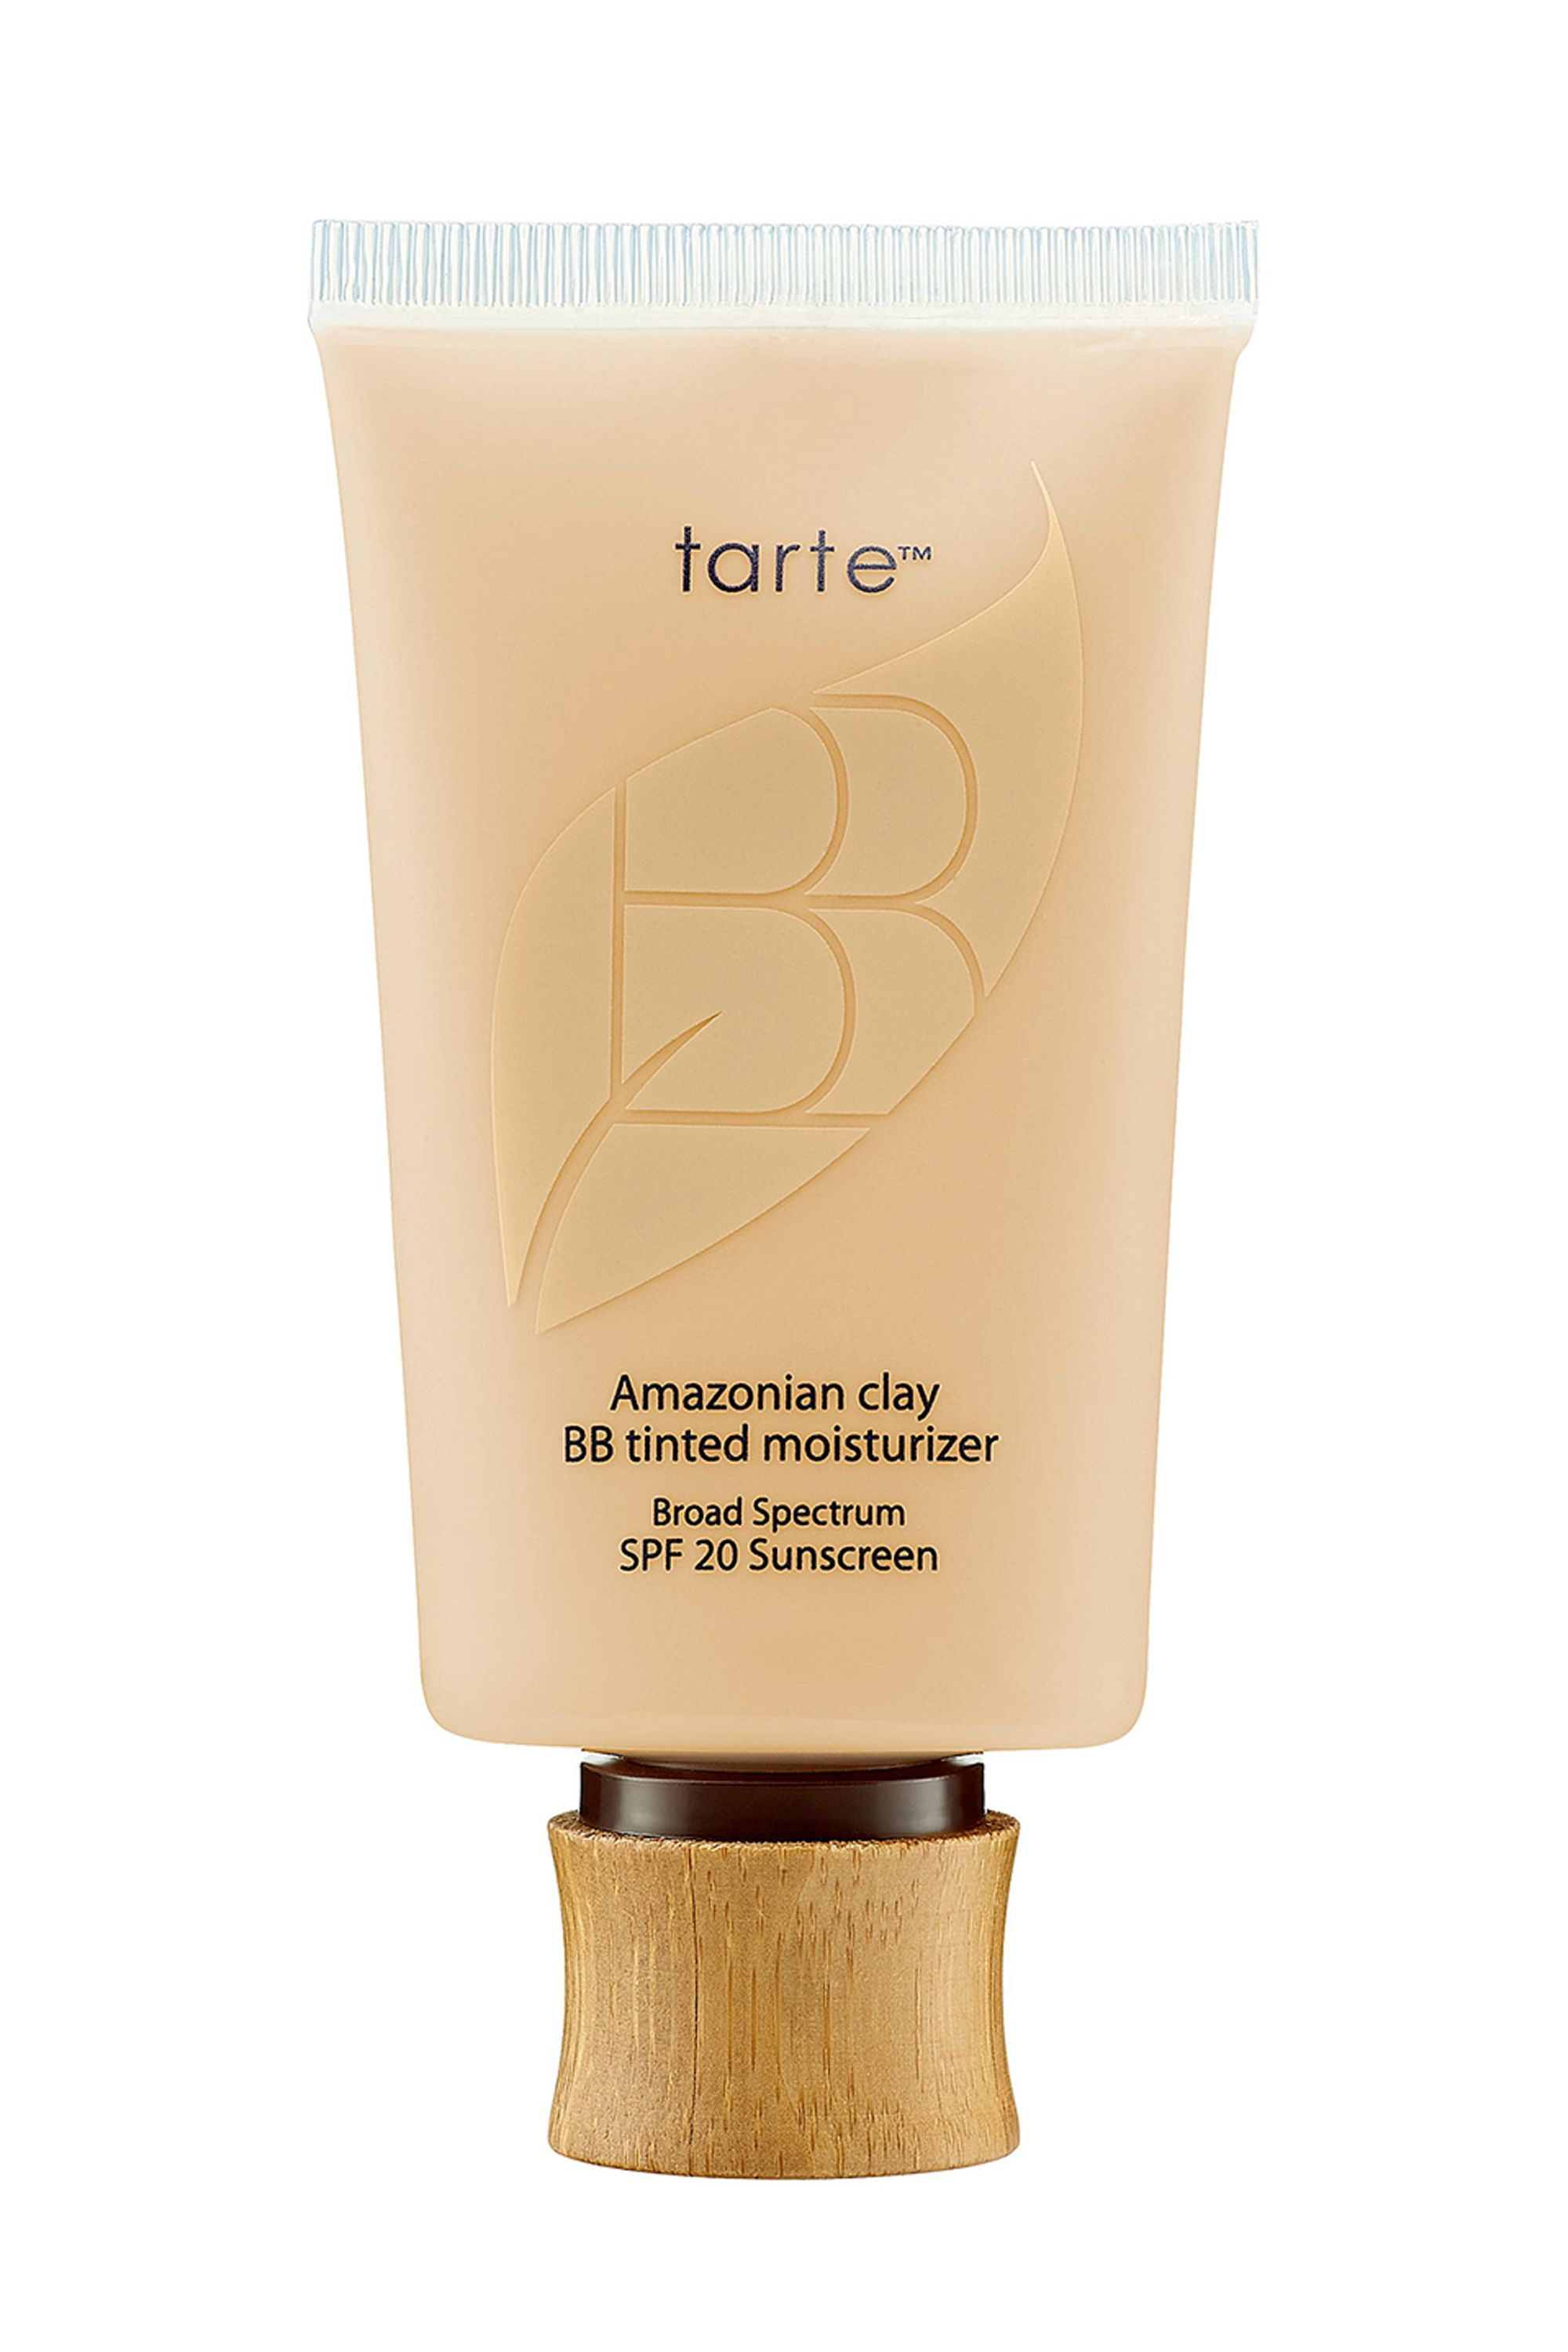 Tinted Moisturizers For The Perfect No-MakeupLook Tinted Moisturizers For The Perfect No-MakeupLook new foto